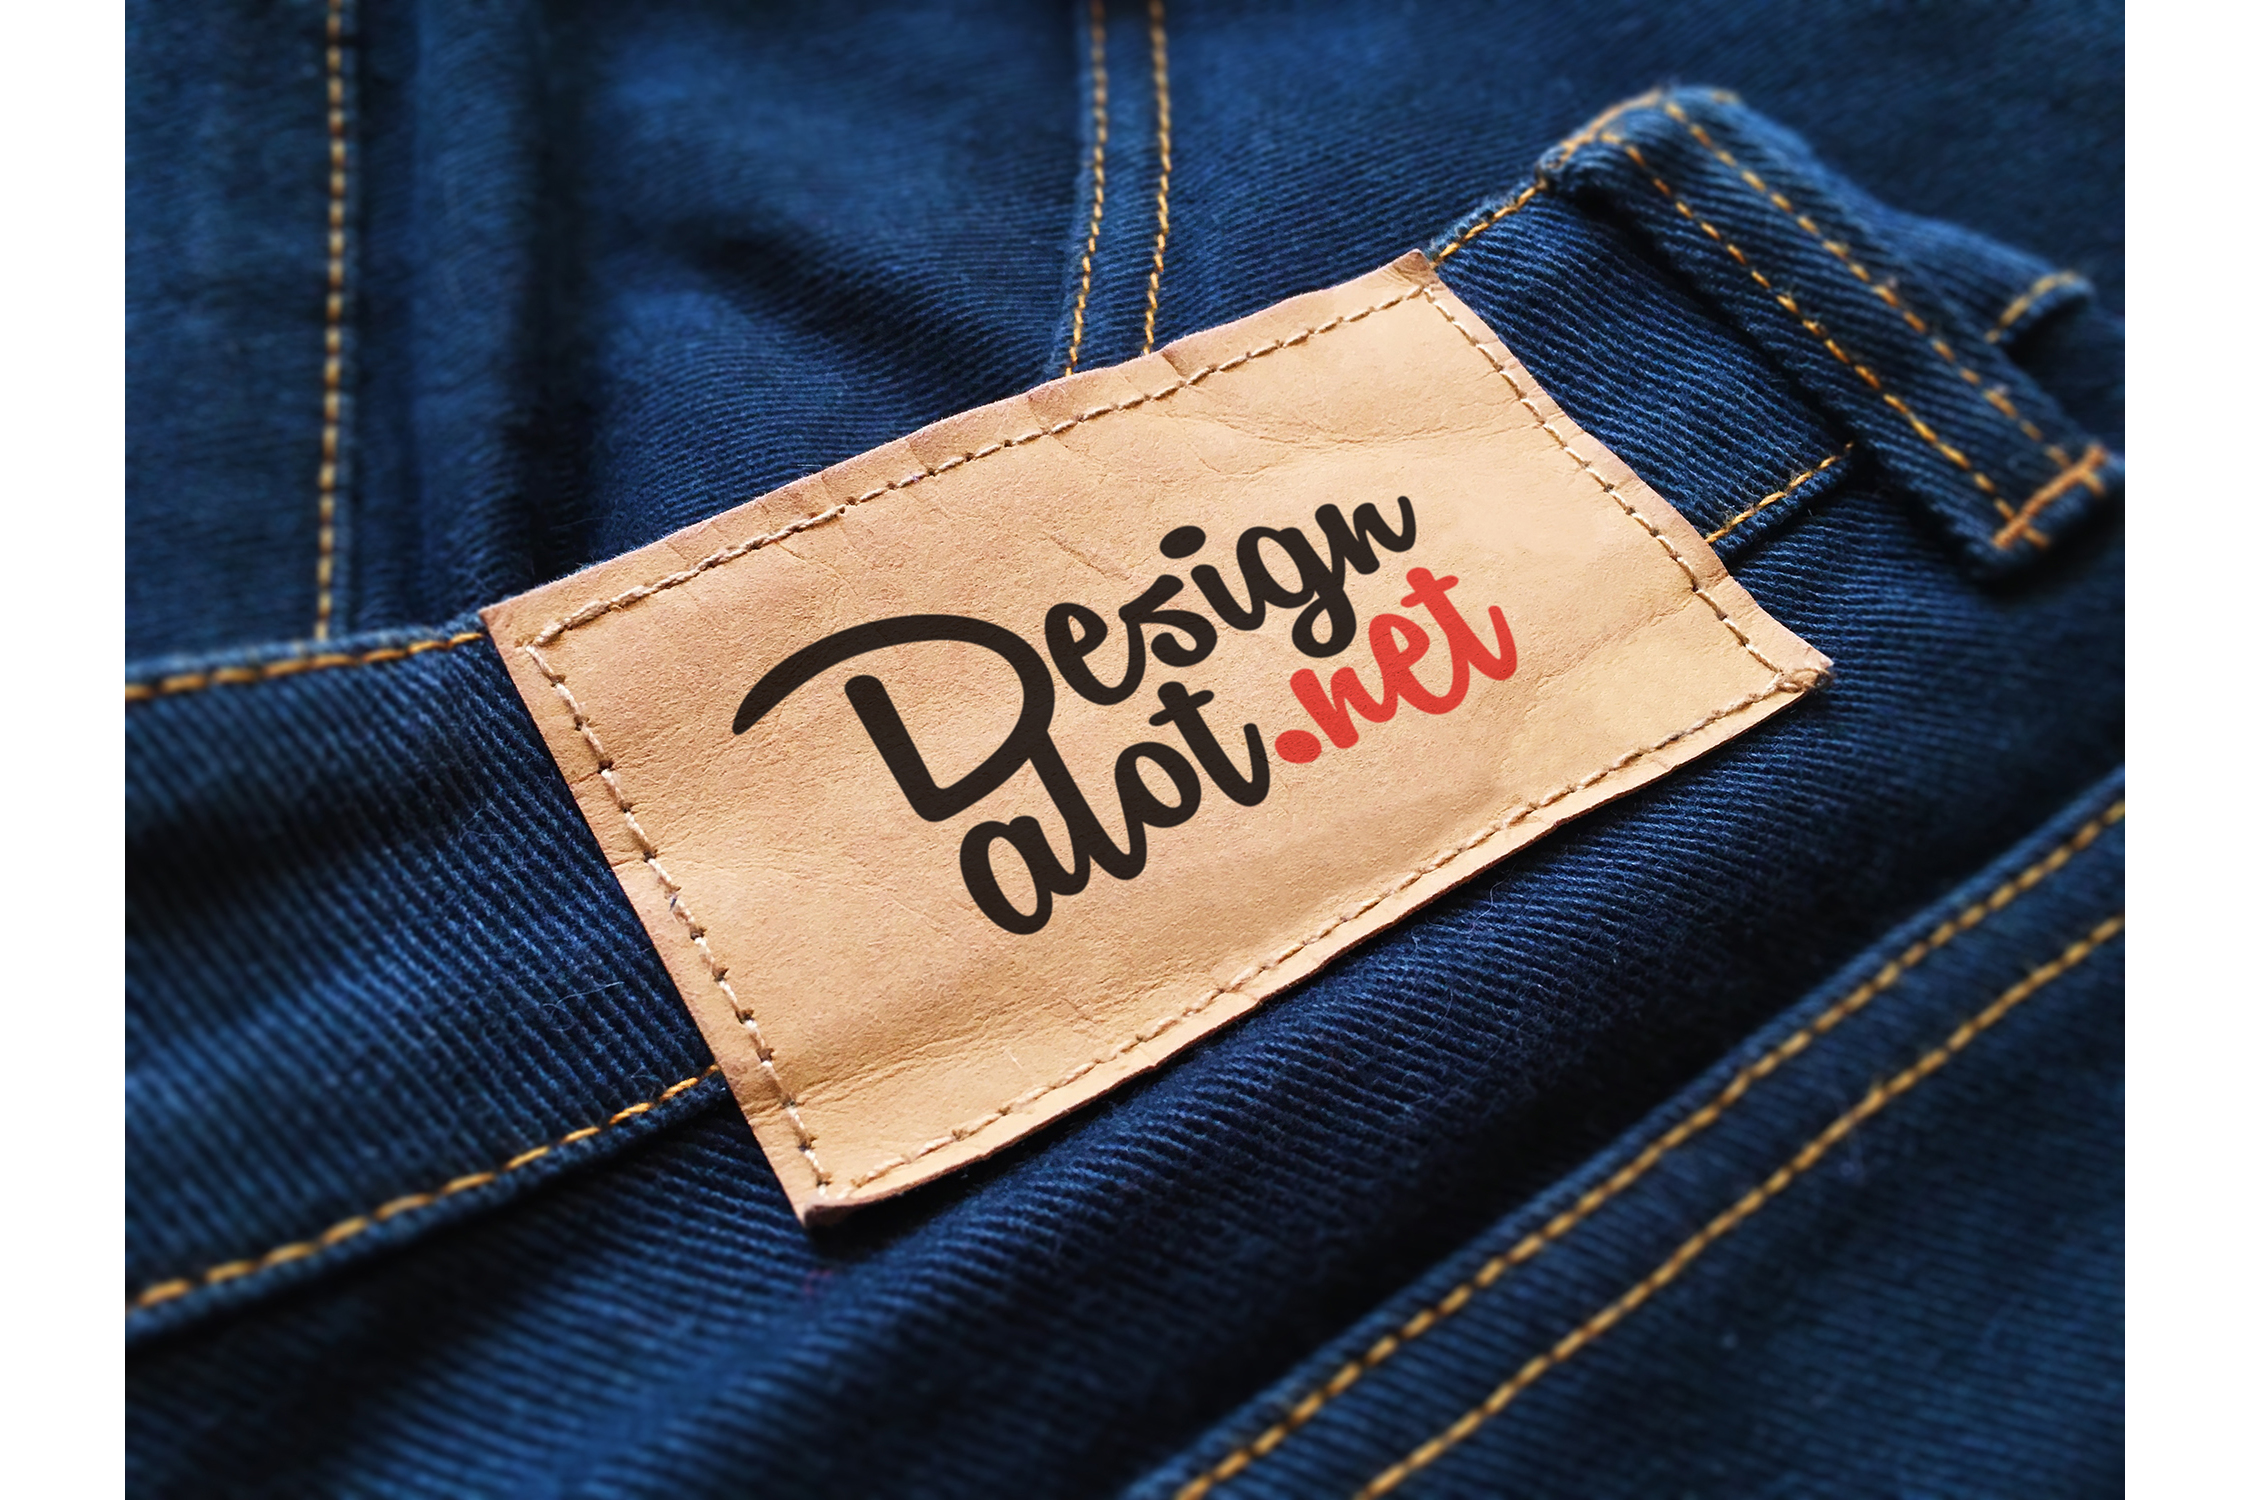 7 Jeans and Pants Label Mockups example image 5